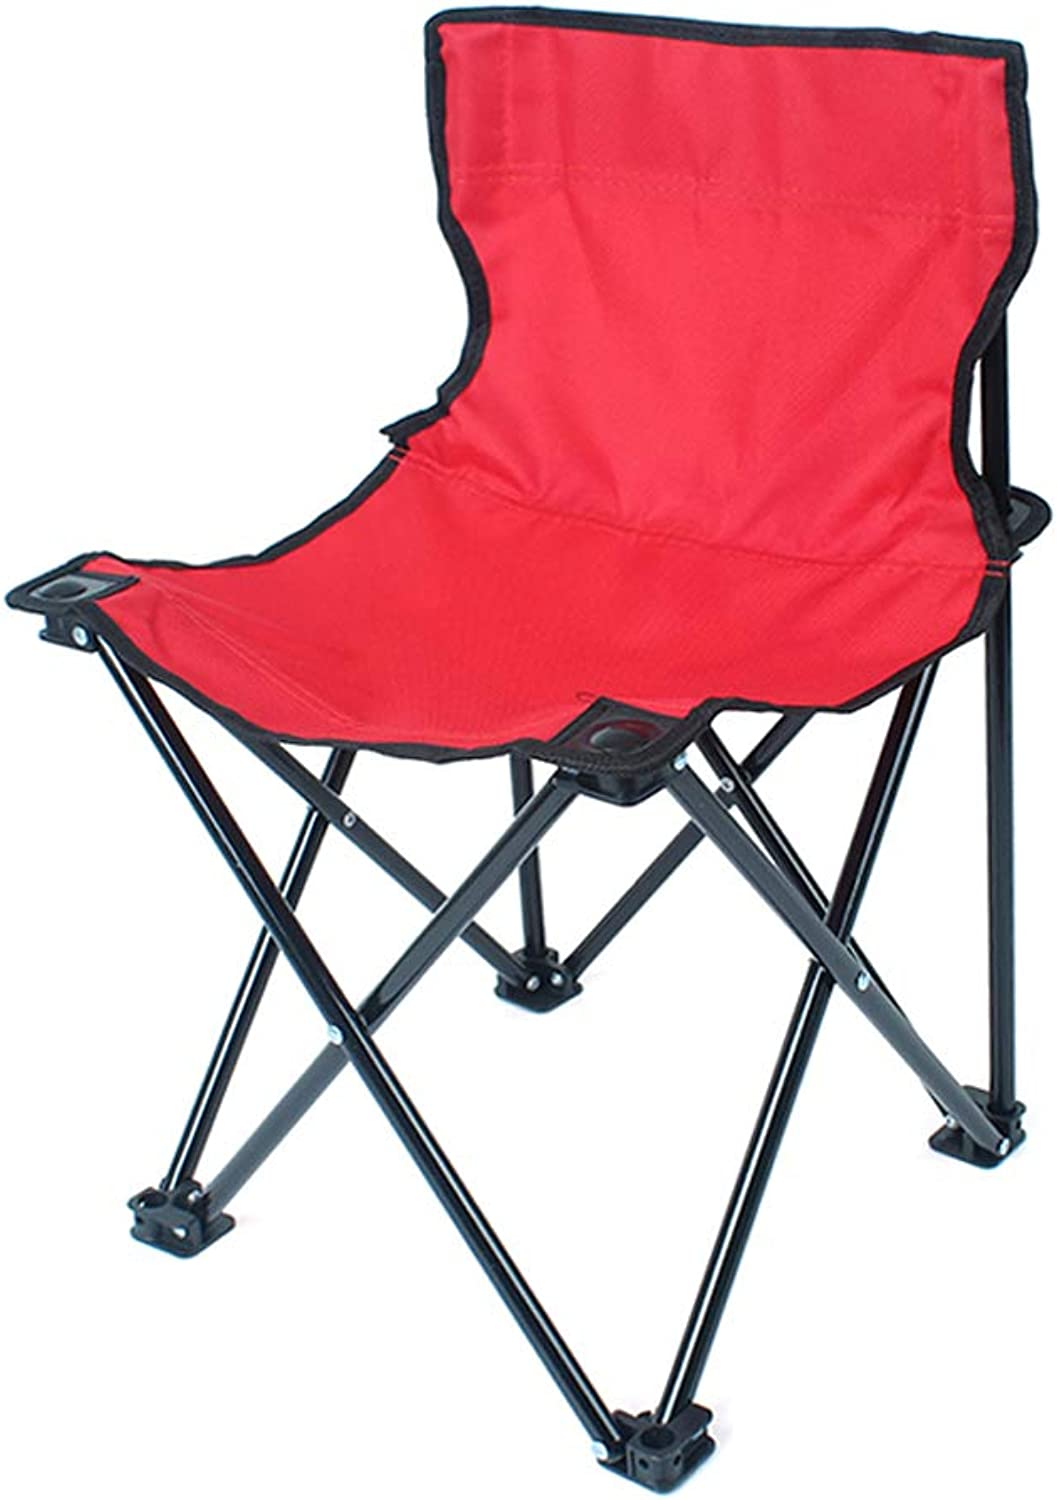 Portable Camping Chair Lightweight Compact Folding Backpacking Chair, Heavy Duty 220lbs Capacity with Carry Bag, Breathable and Comfortable for Outdoor, BBQ, Hiking, Picnic, Fishing, Festival